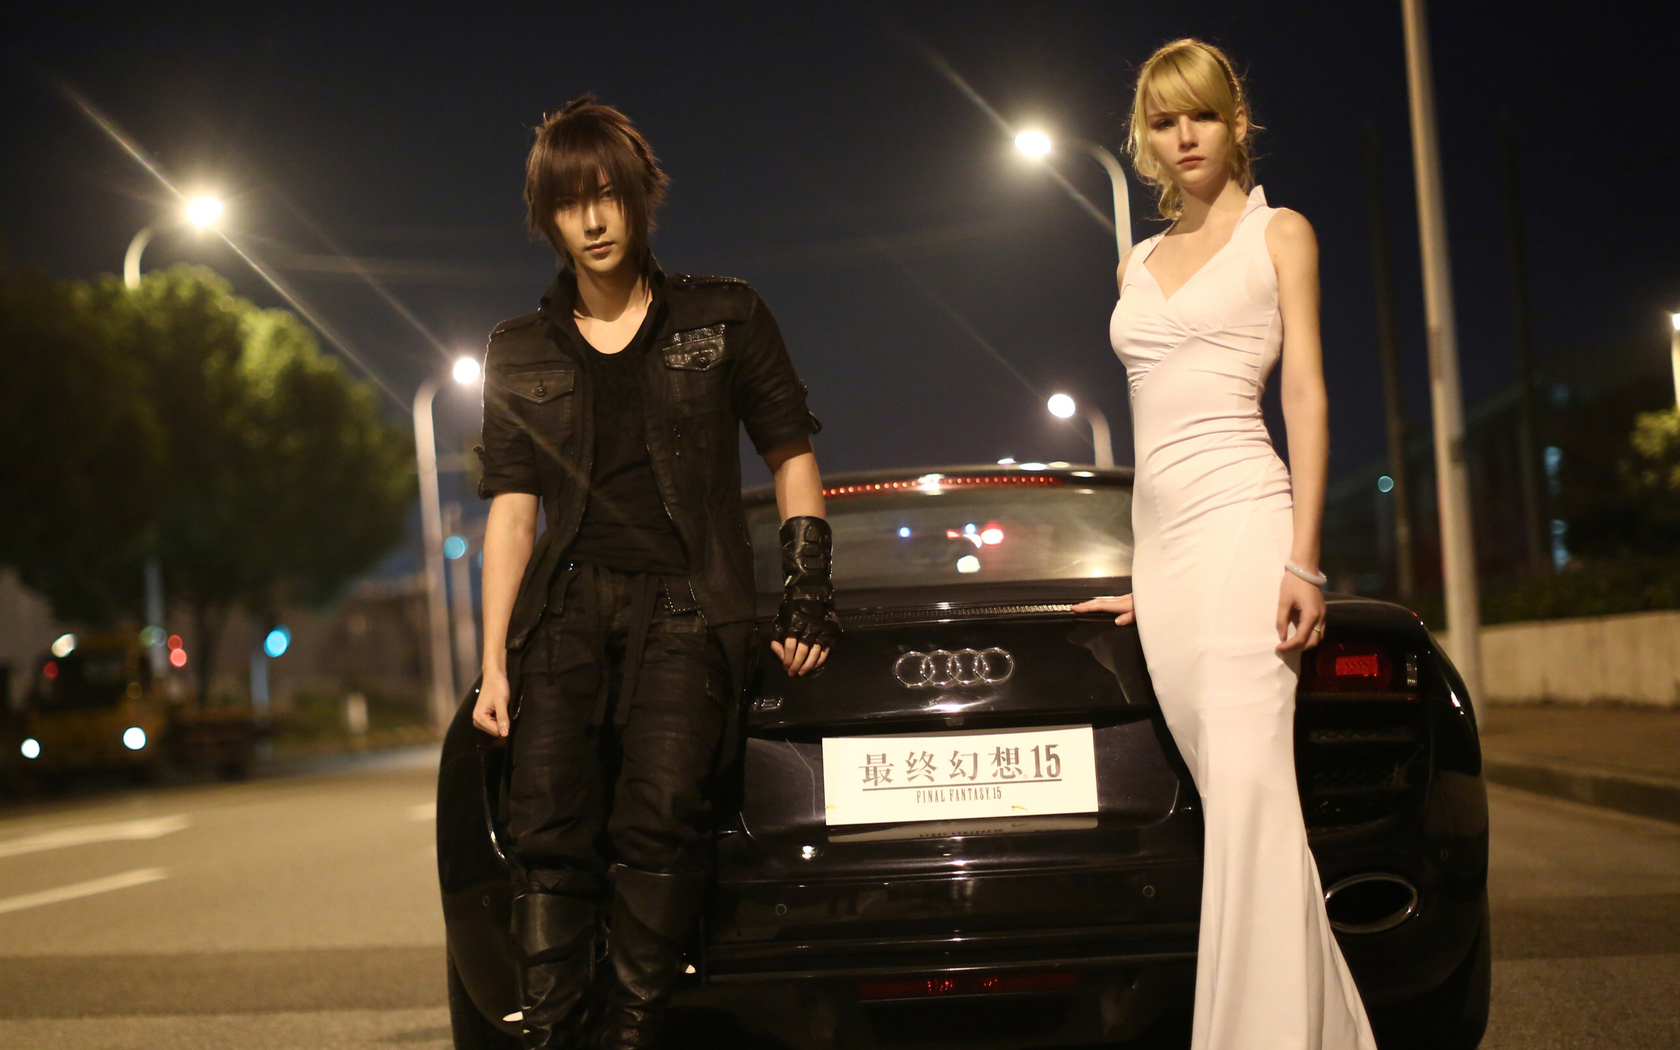 Final Fantasy Xv 4k Wallpapers: 1680x1050 Final Fantasy XV Noctis And Luna Cosplay